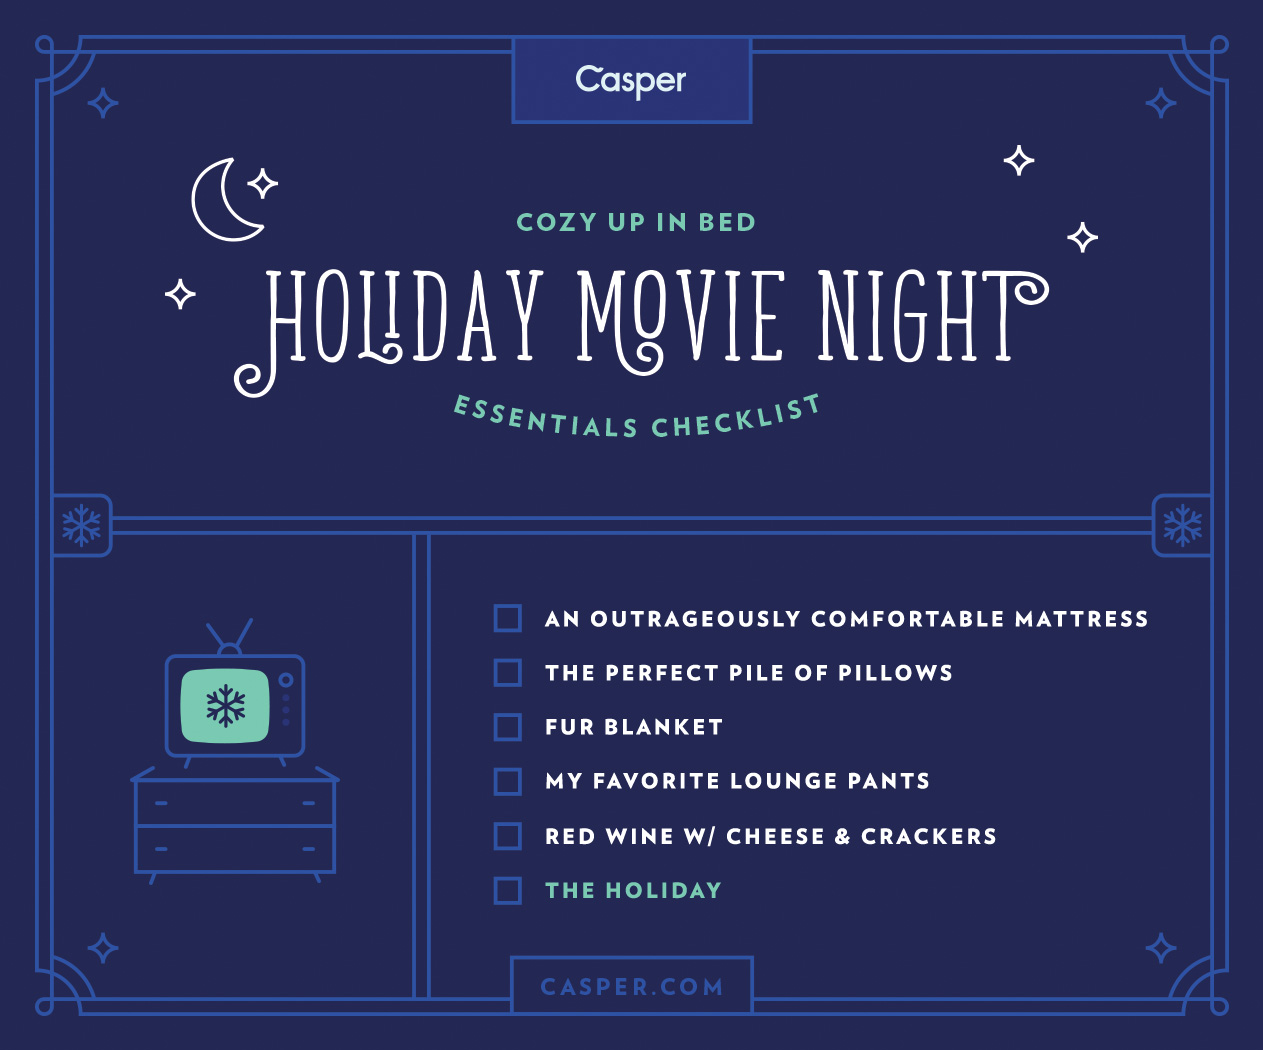 Sarah_HolidayMovieNight